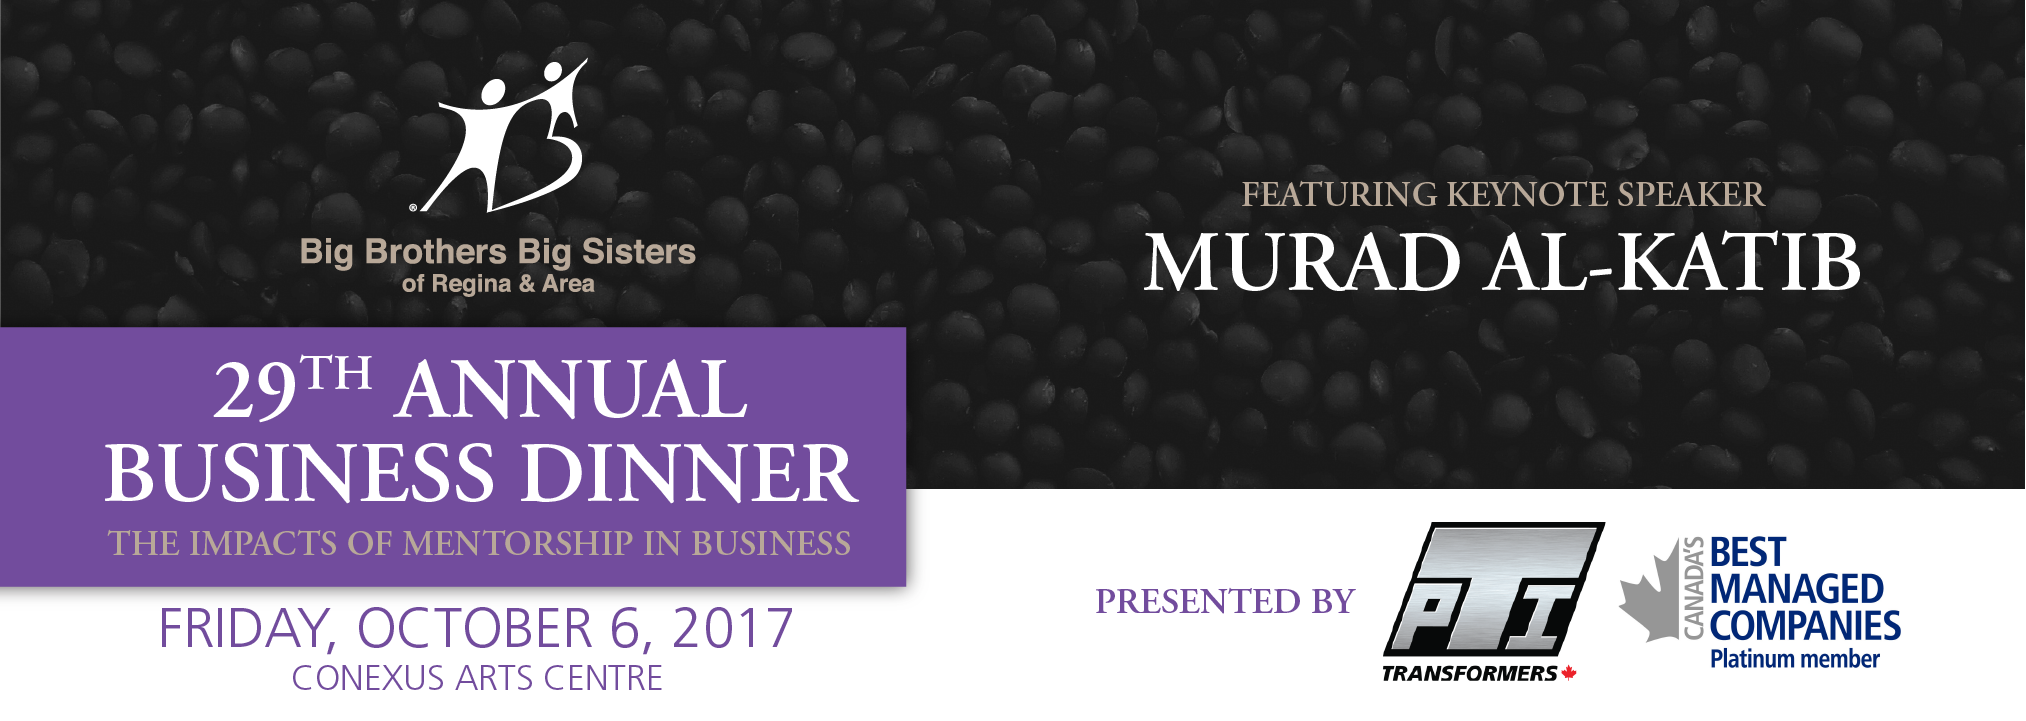 Big Brothers Big Sisters of Regina & Area 29th Annual Business Dinner – Presented by PTI